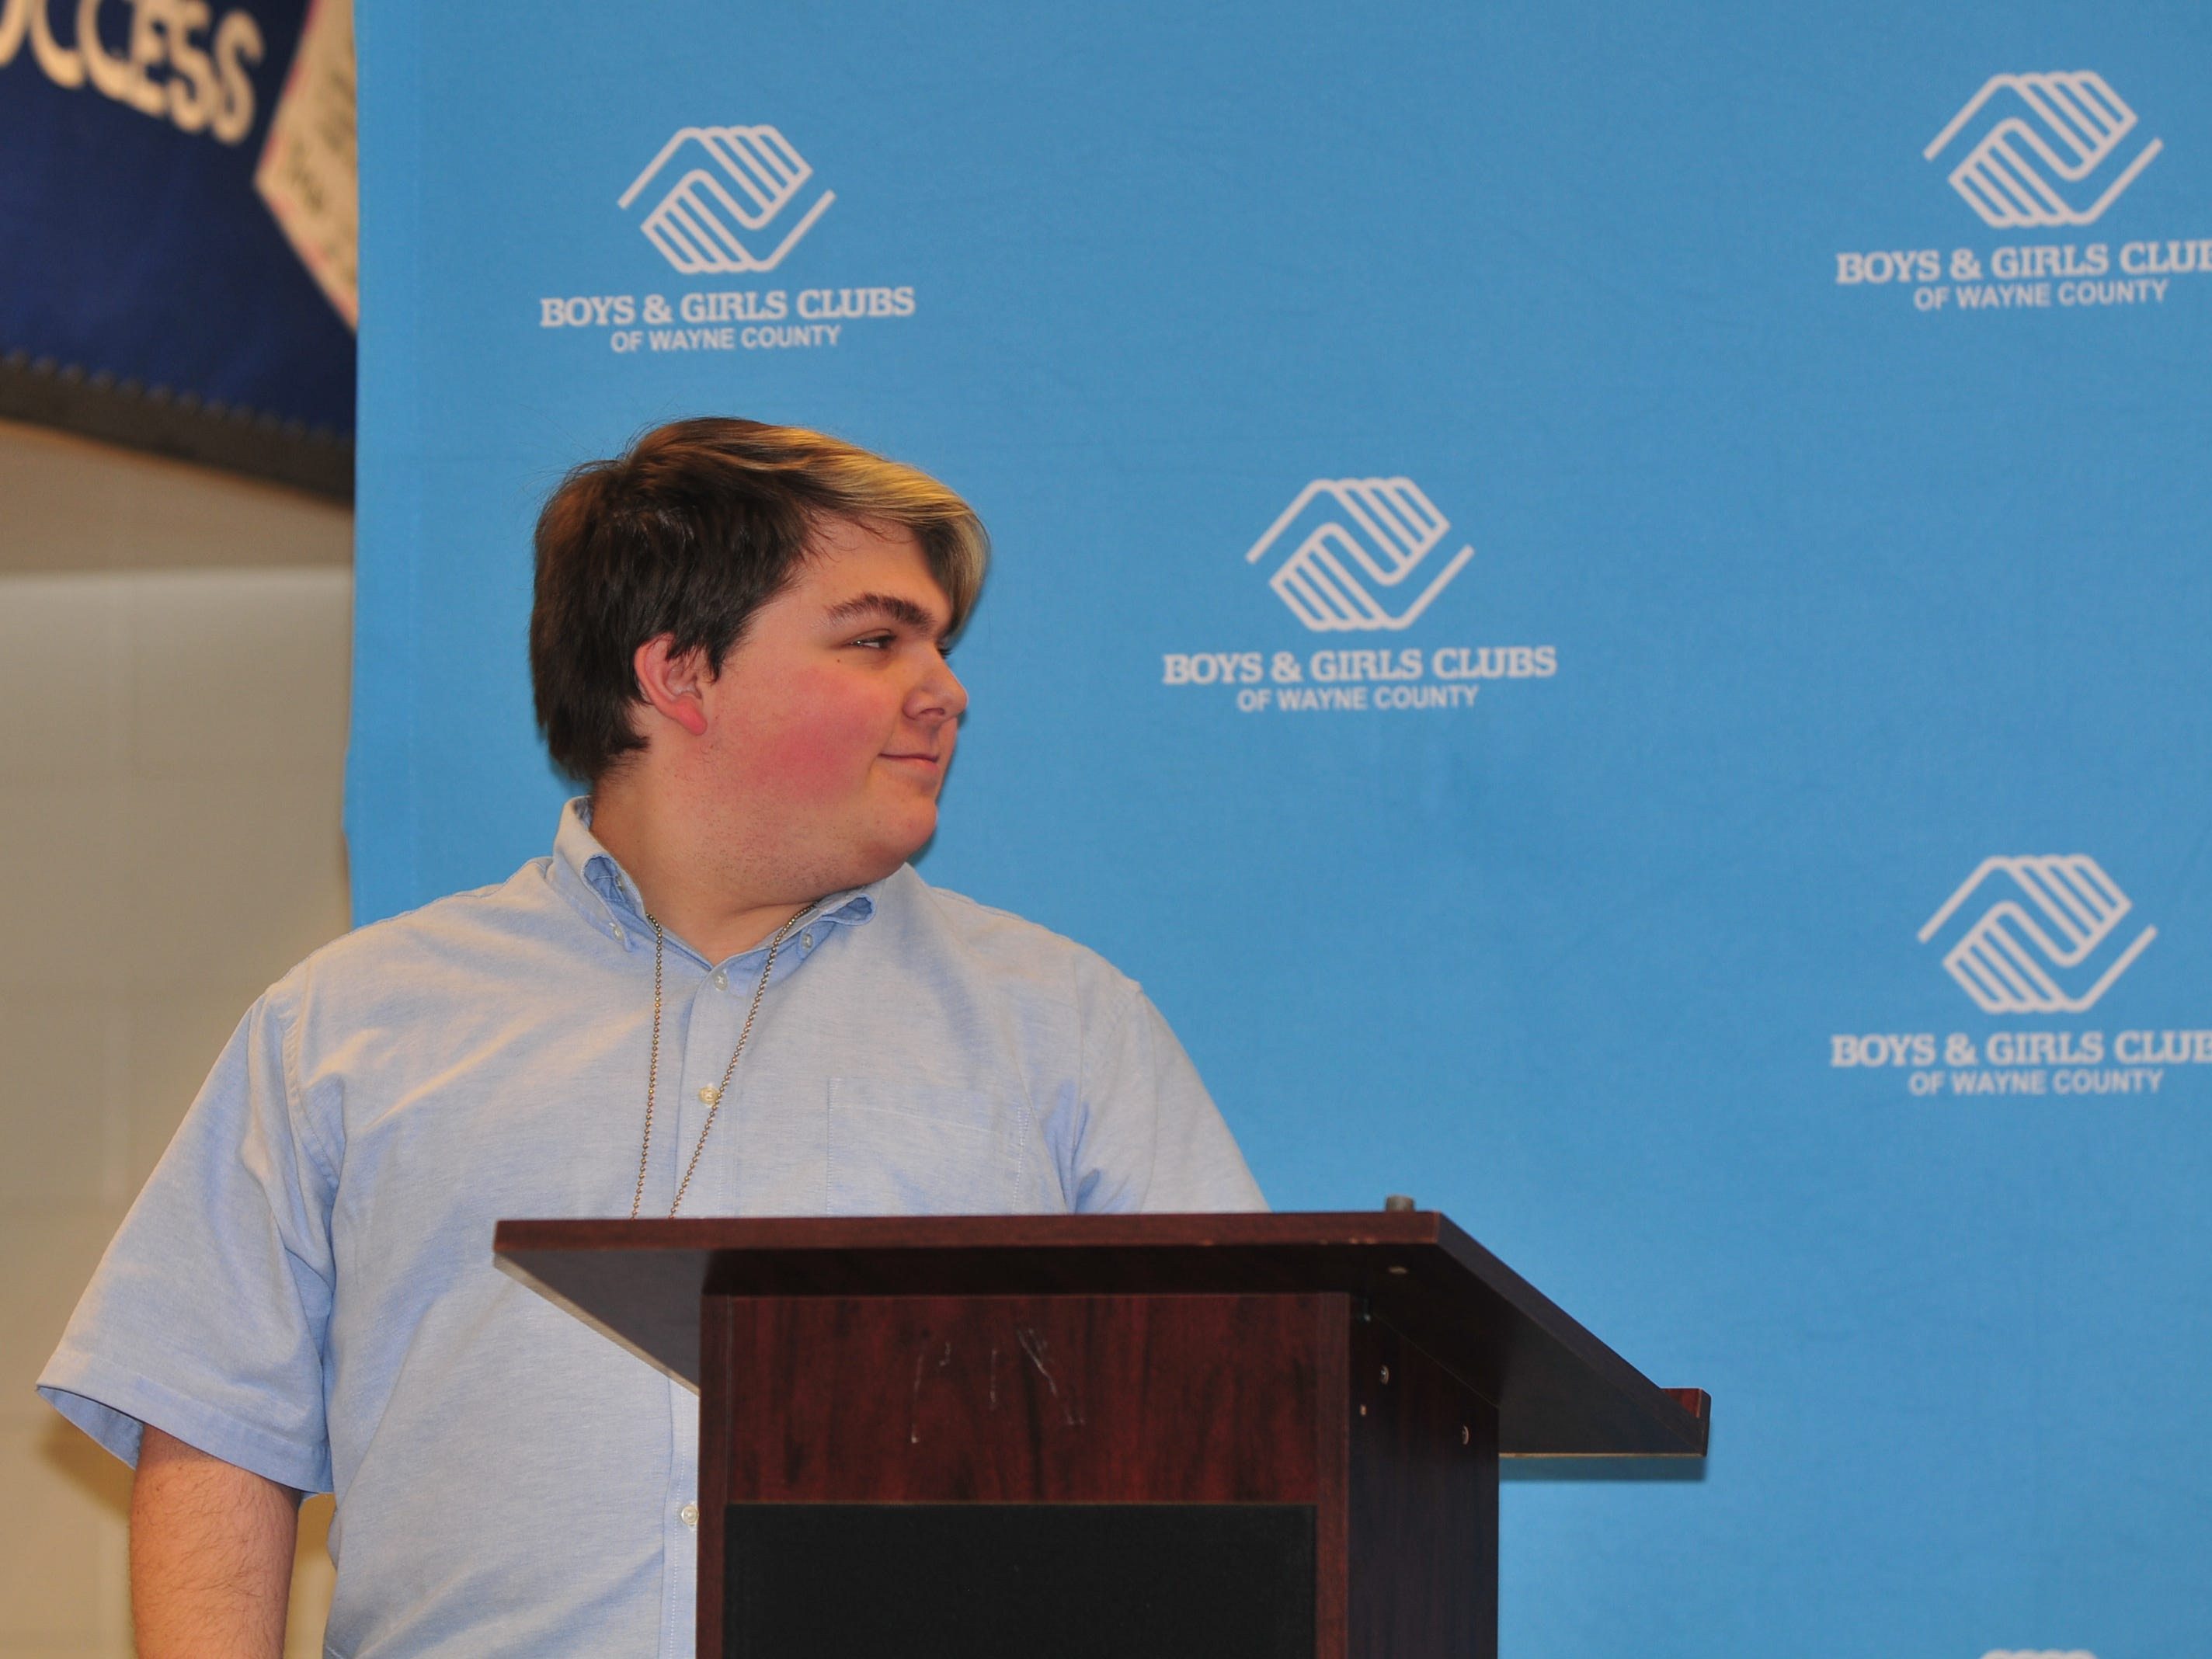 Mikey Martin reacts after learning he was chosen the Youth of the Year for the Boy and Girls Clubs of Wayne County.